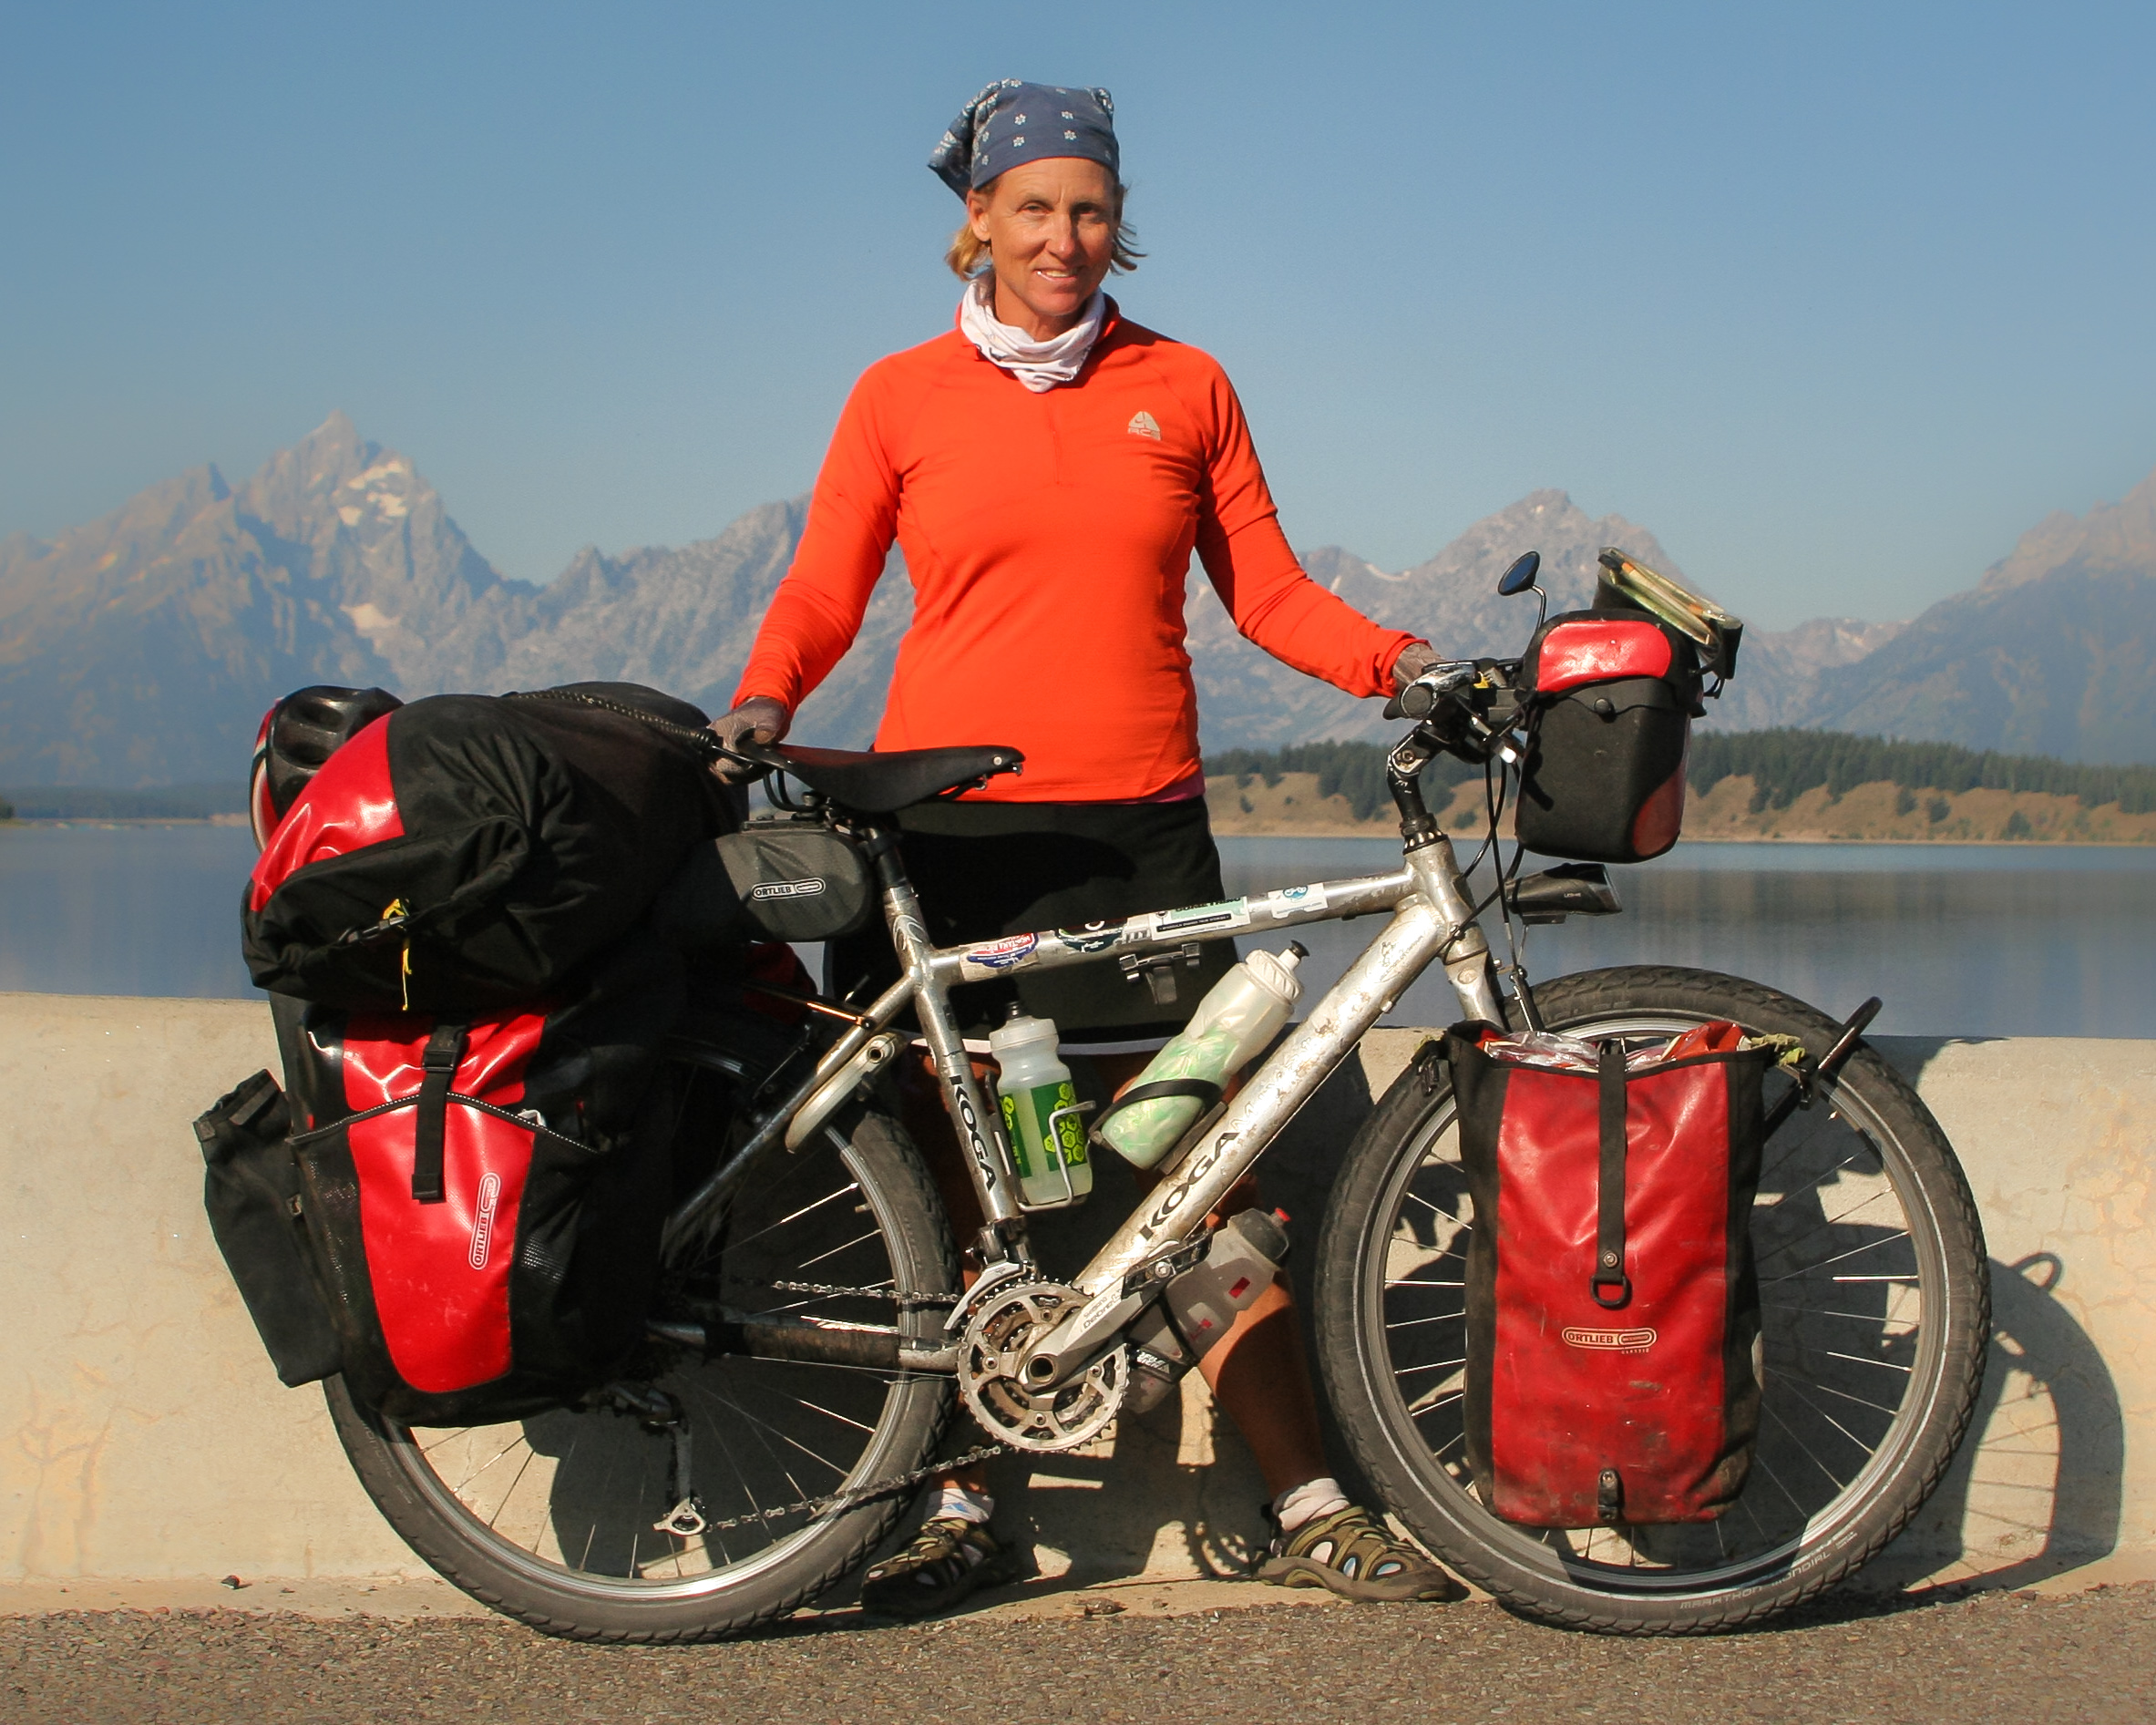 the world's most travelled American female cyclist